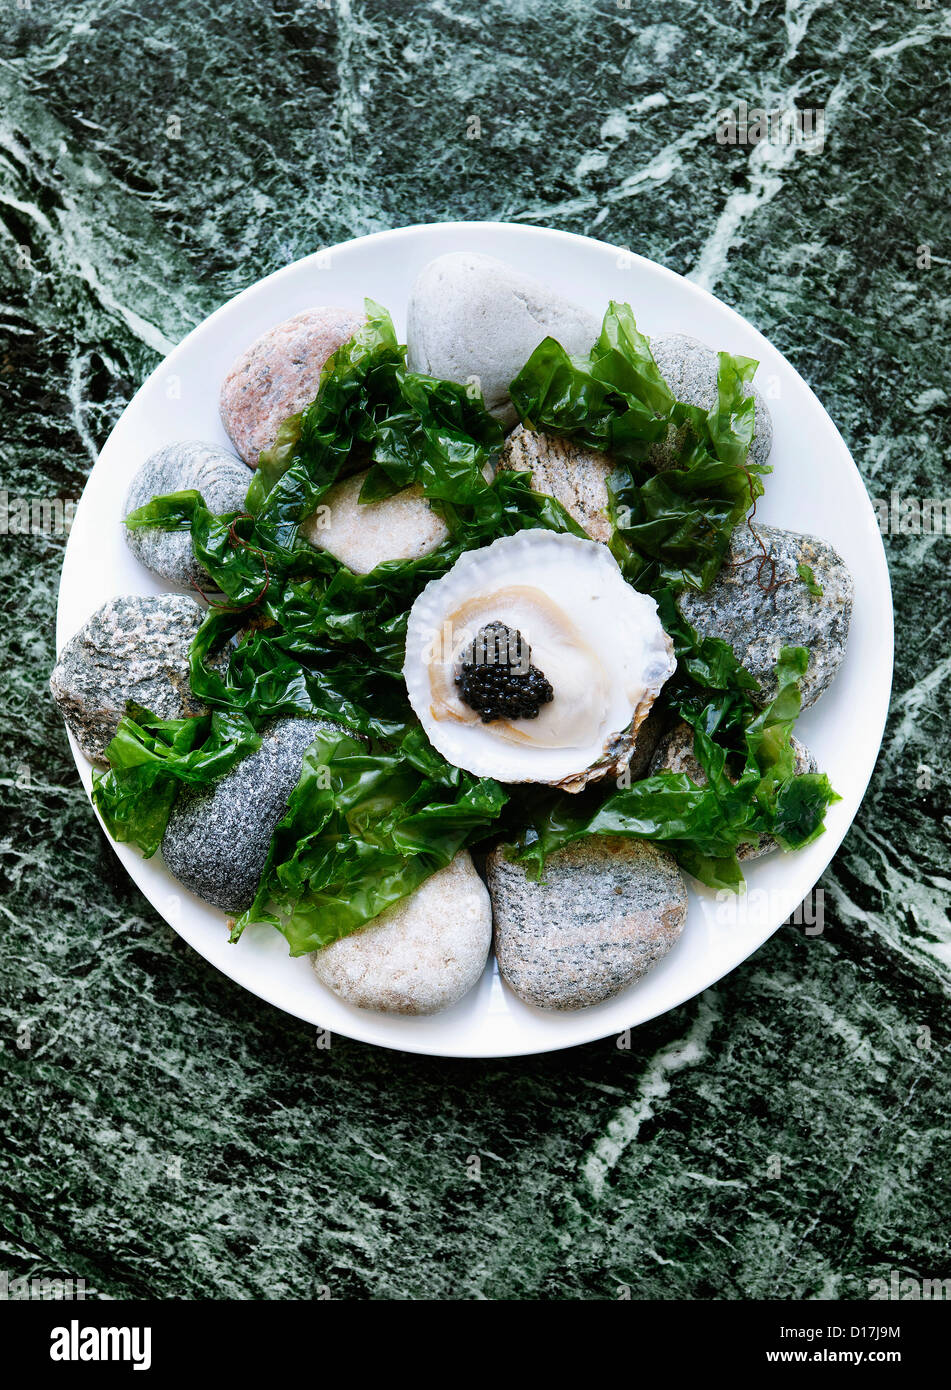 Plate of oysters with caviar and seaweed Stock Photo